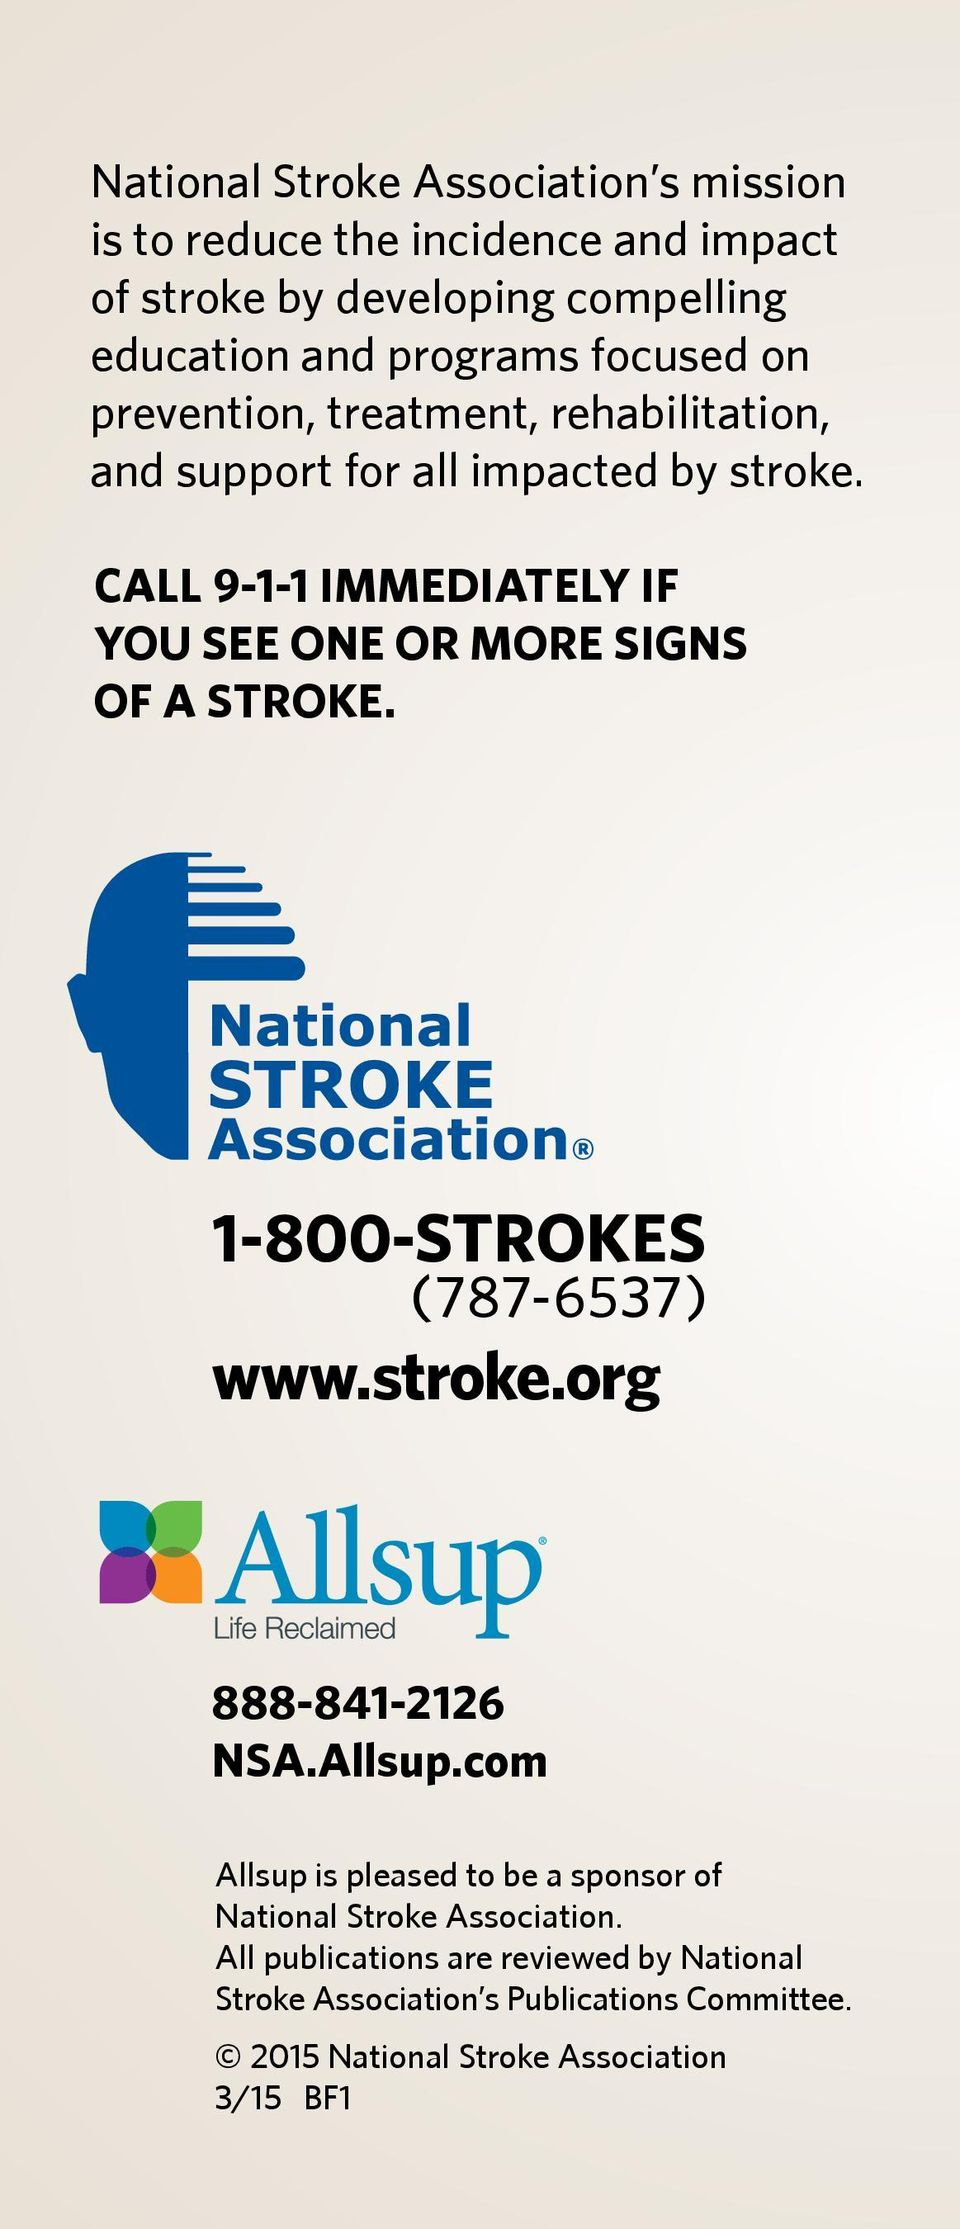 CALL 9-1-1 IMMEDIATELY IF YOU SEE ONE OR MORE SIGNS OF A STROKE. 1-800-STROKES (787-6537) www.stroke.org 888-841-2126 NSA.Allsup.